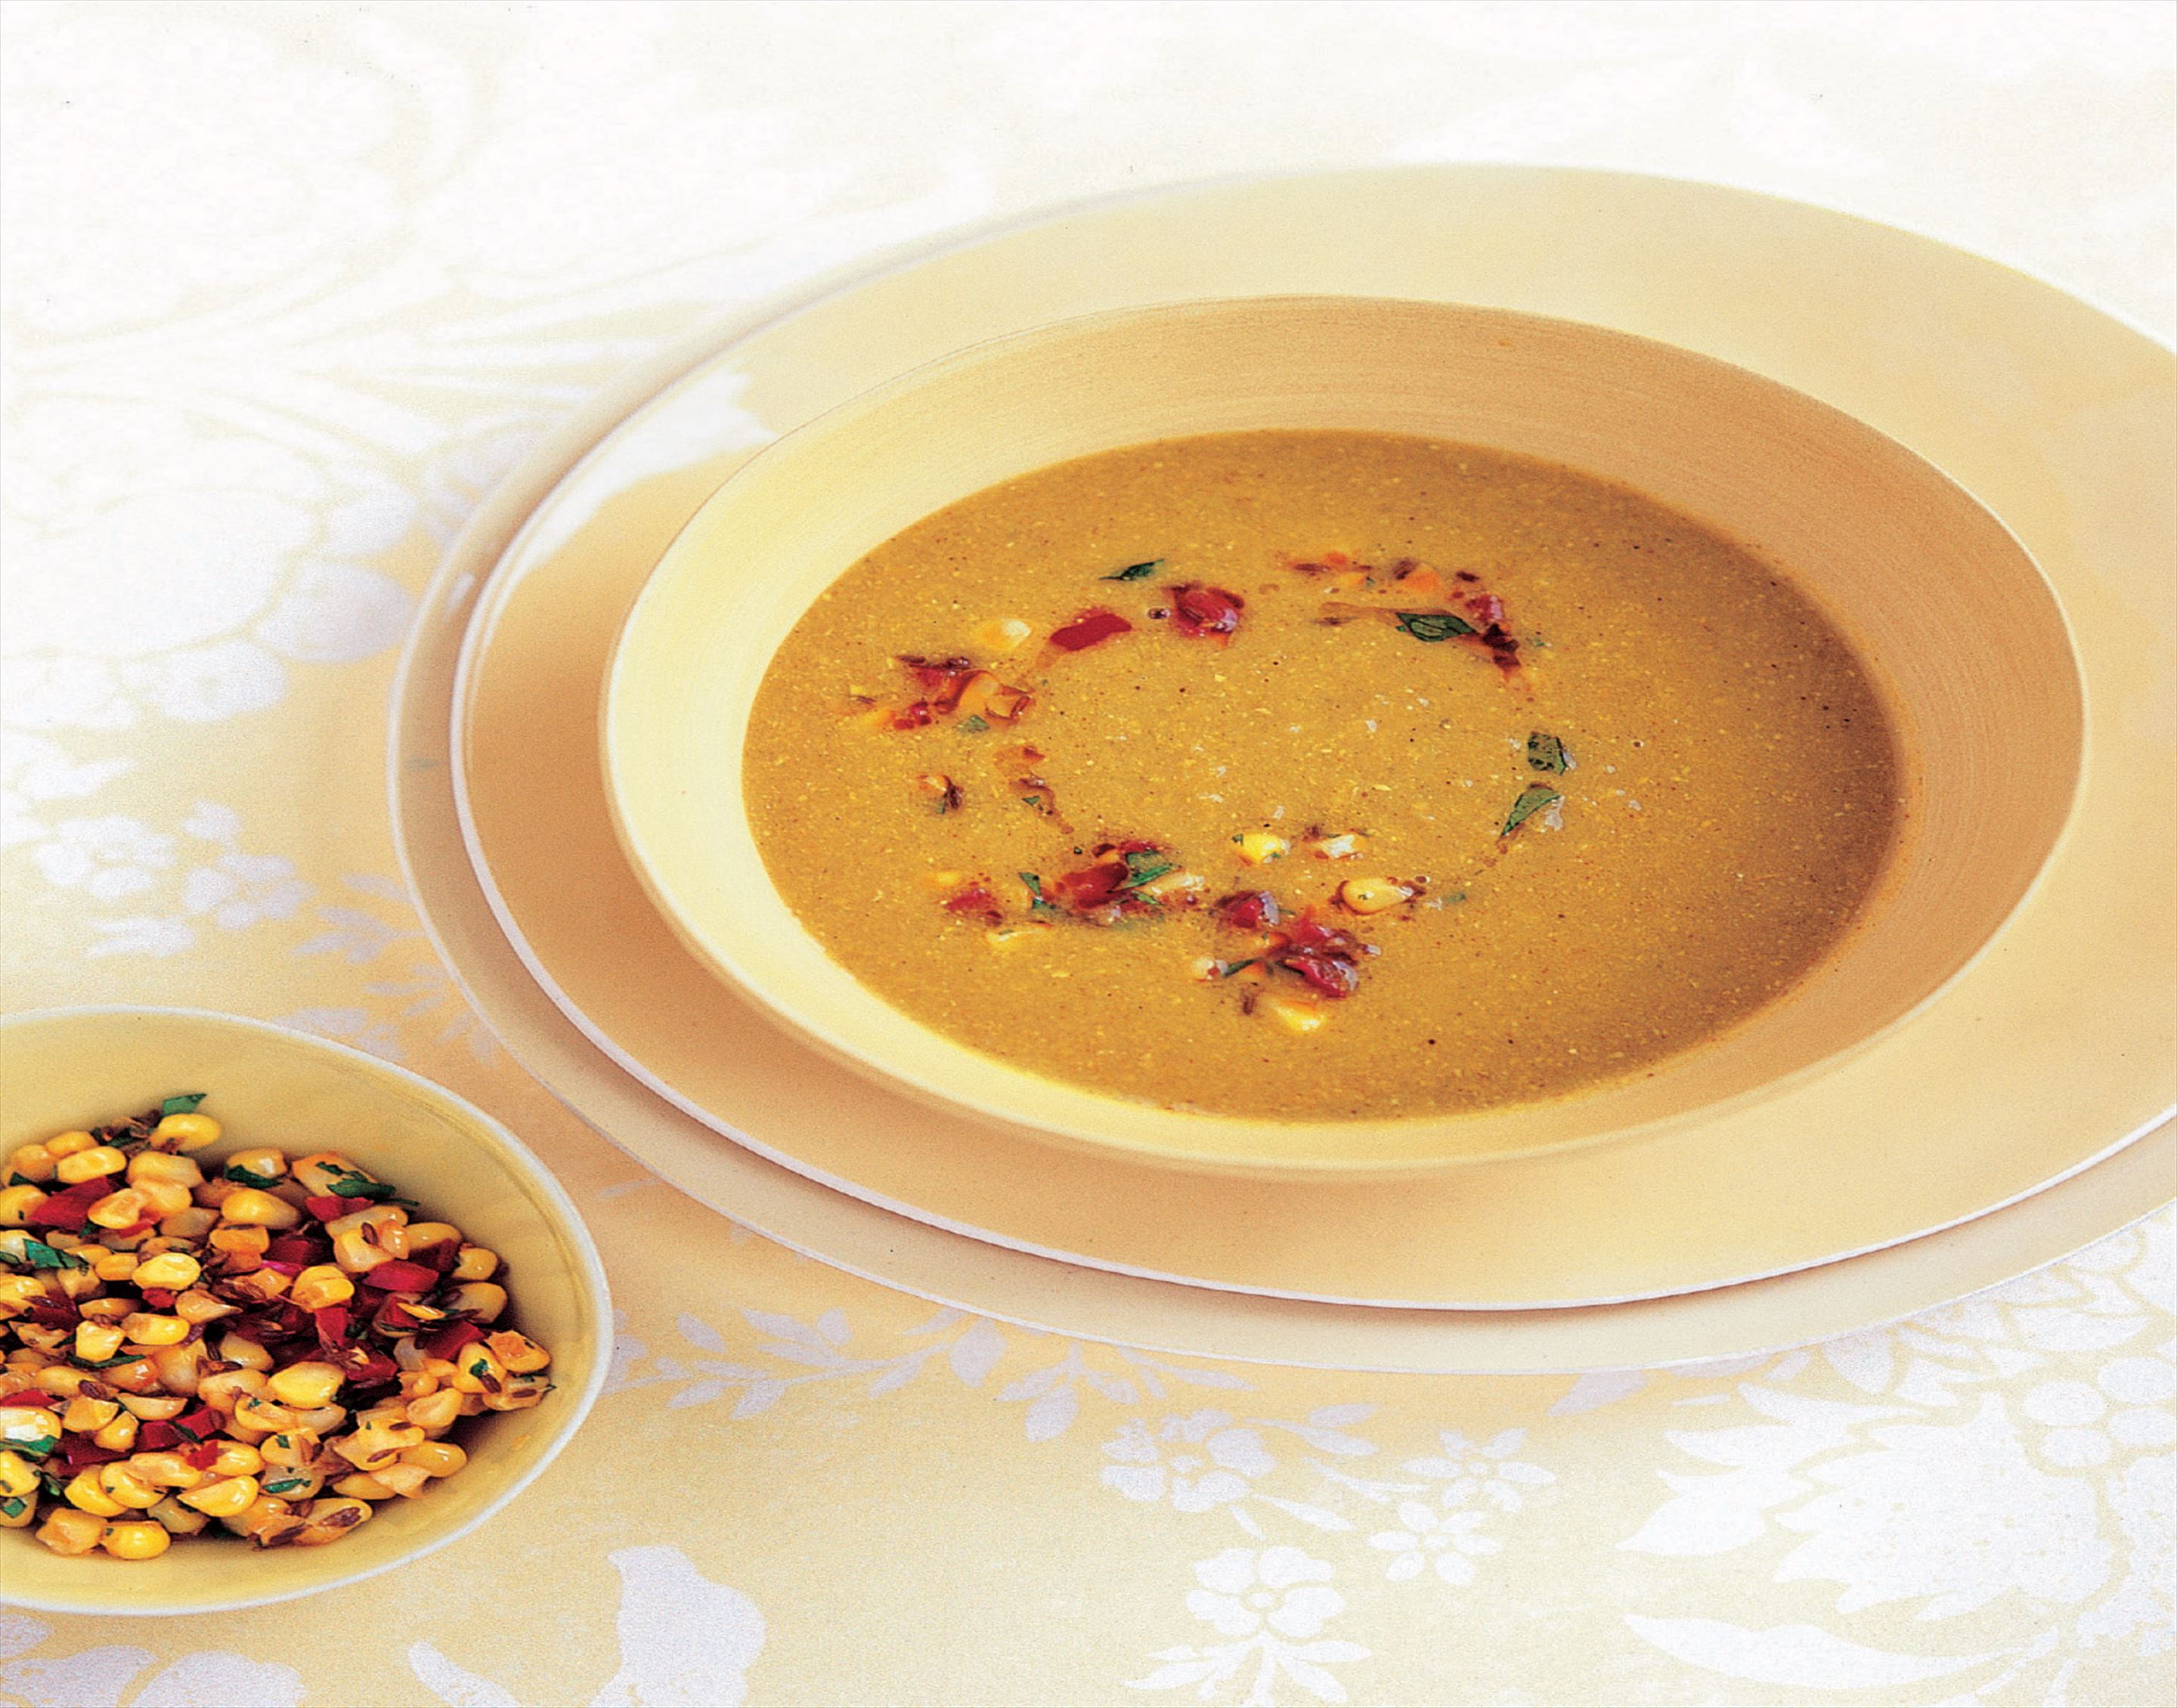 Spicy sweetcorn soup